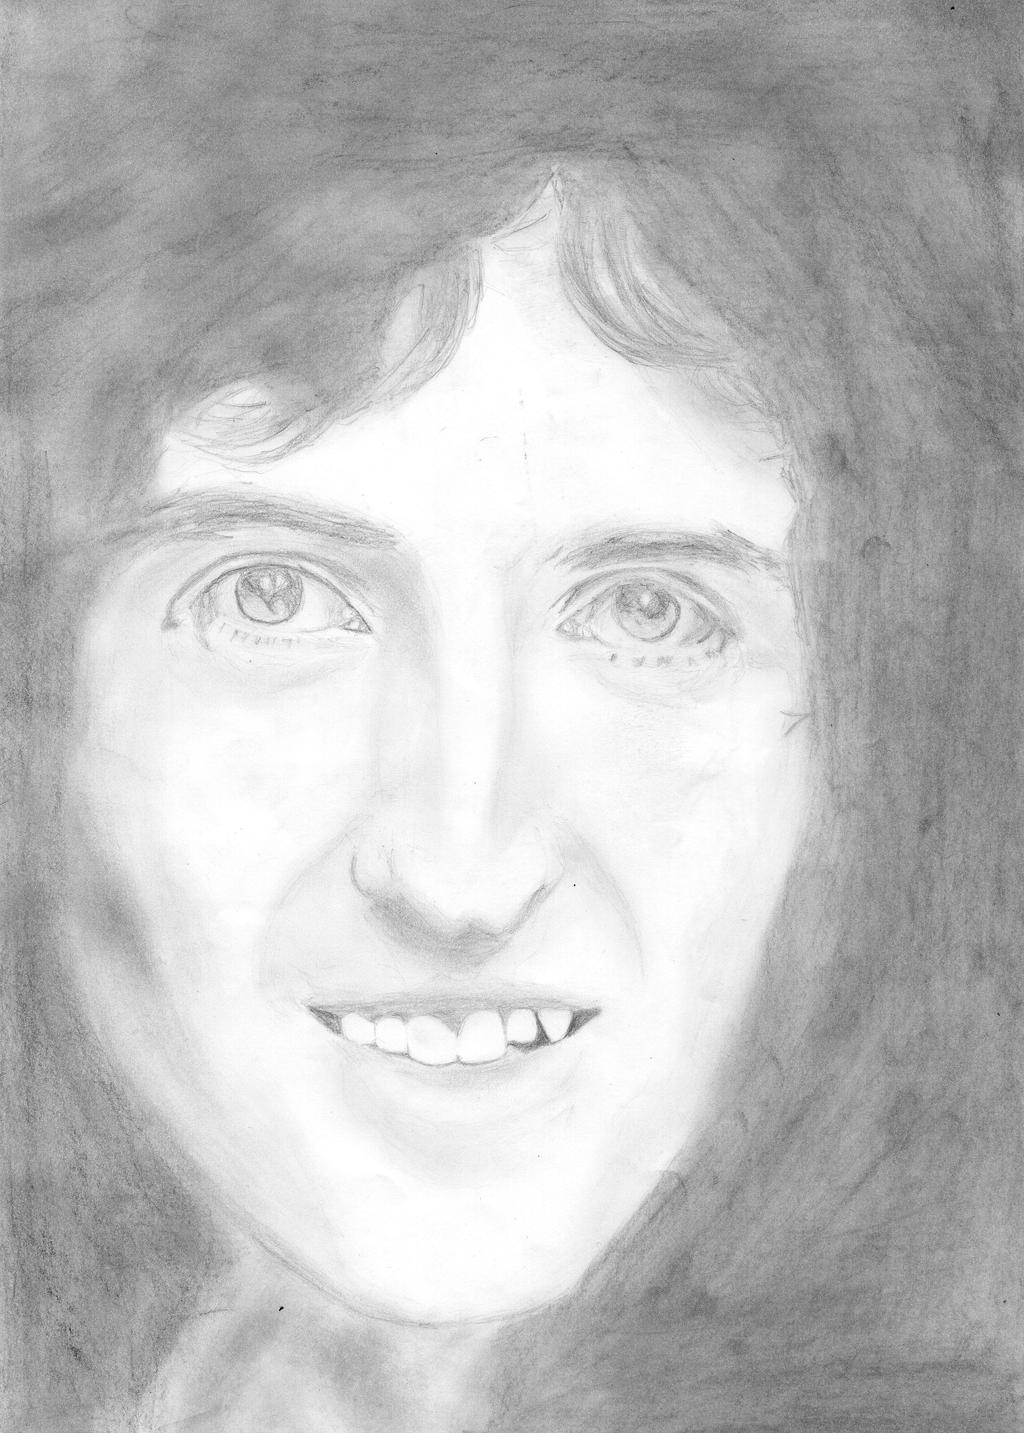 Brian by DrivenByBrianMay